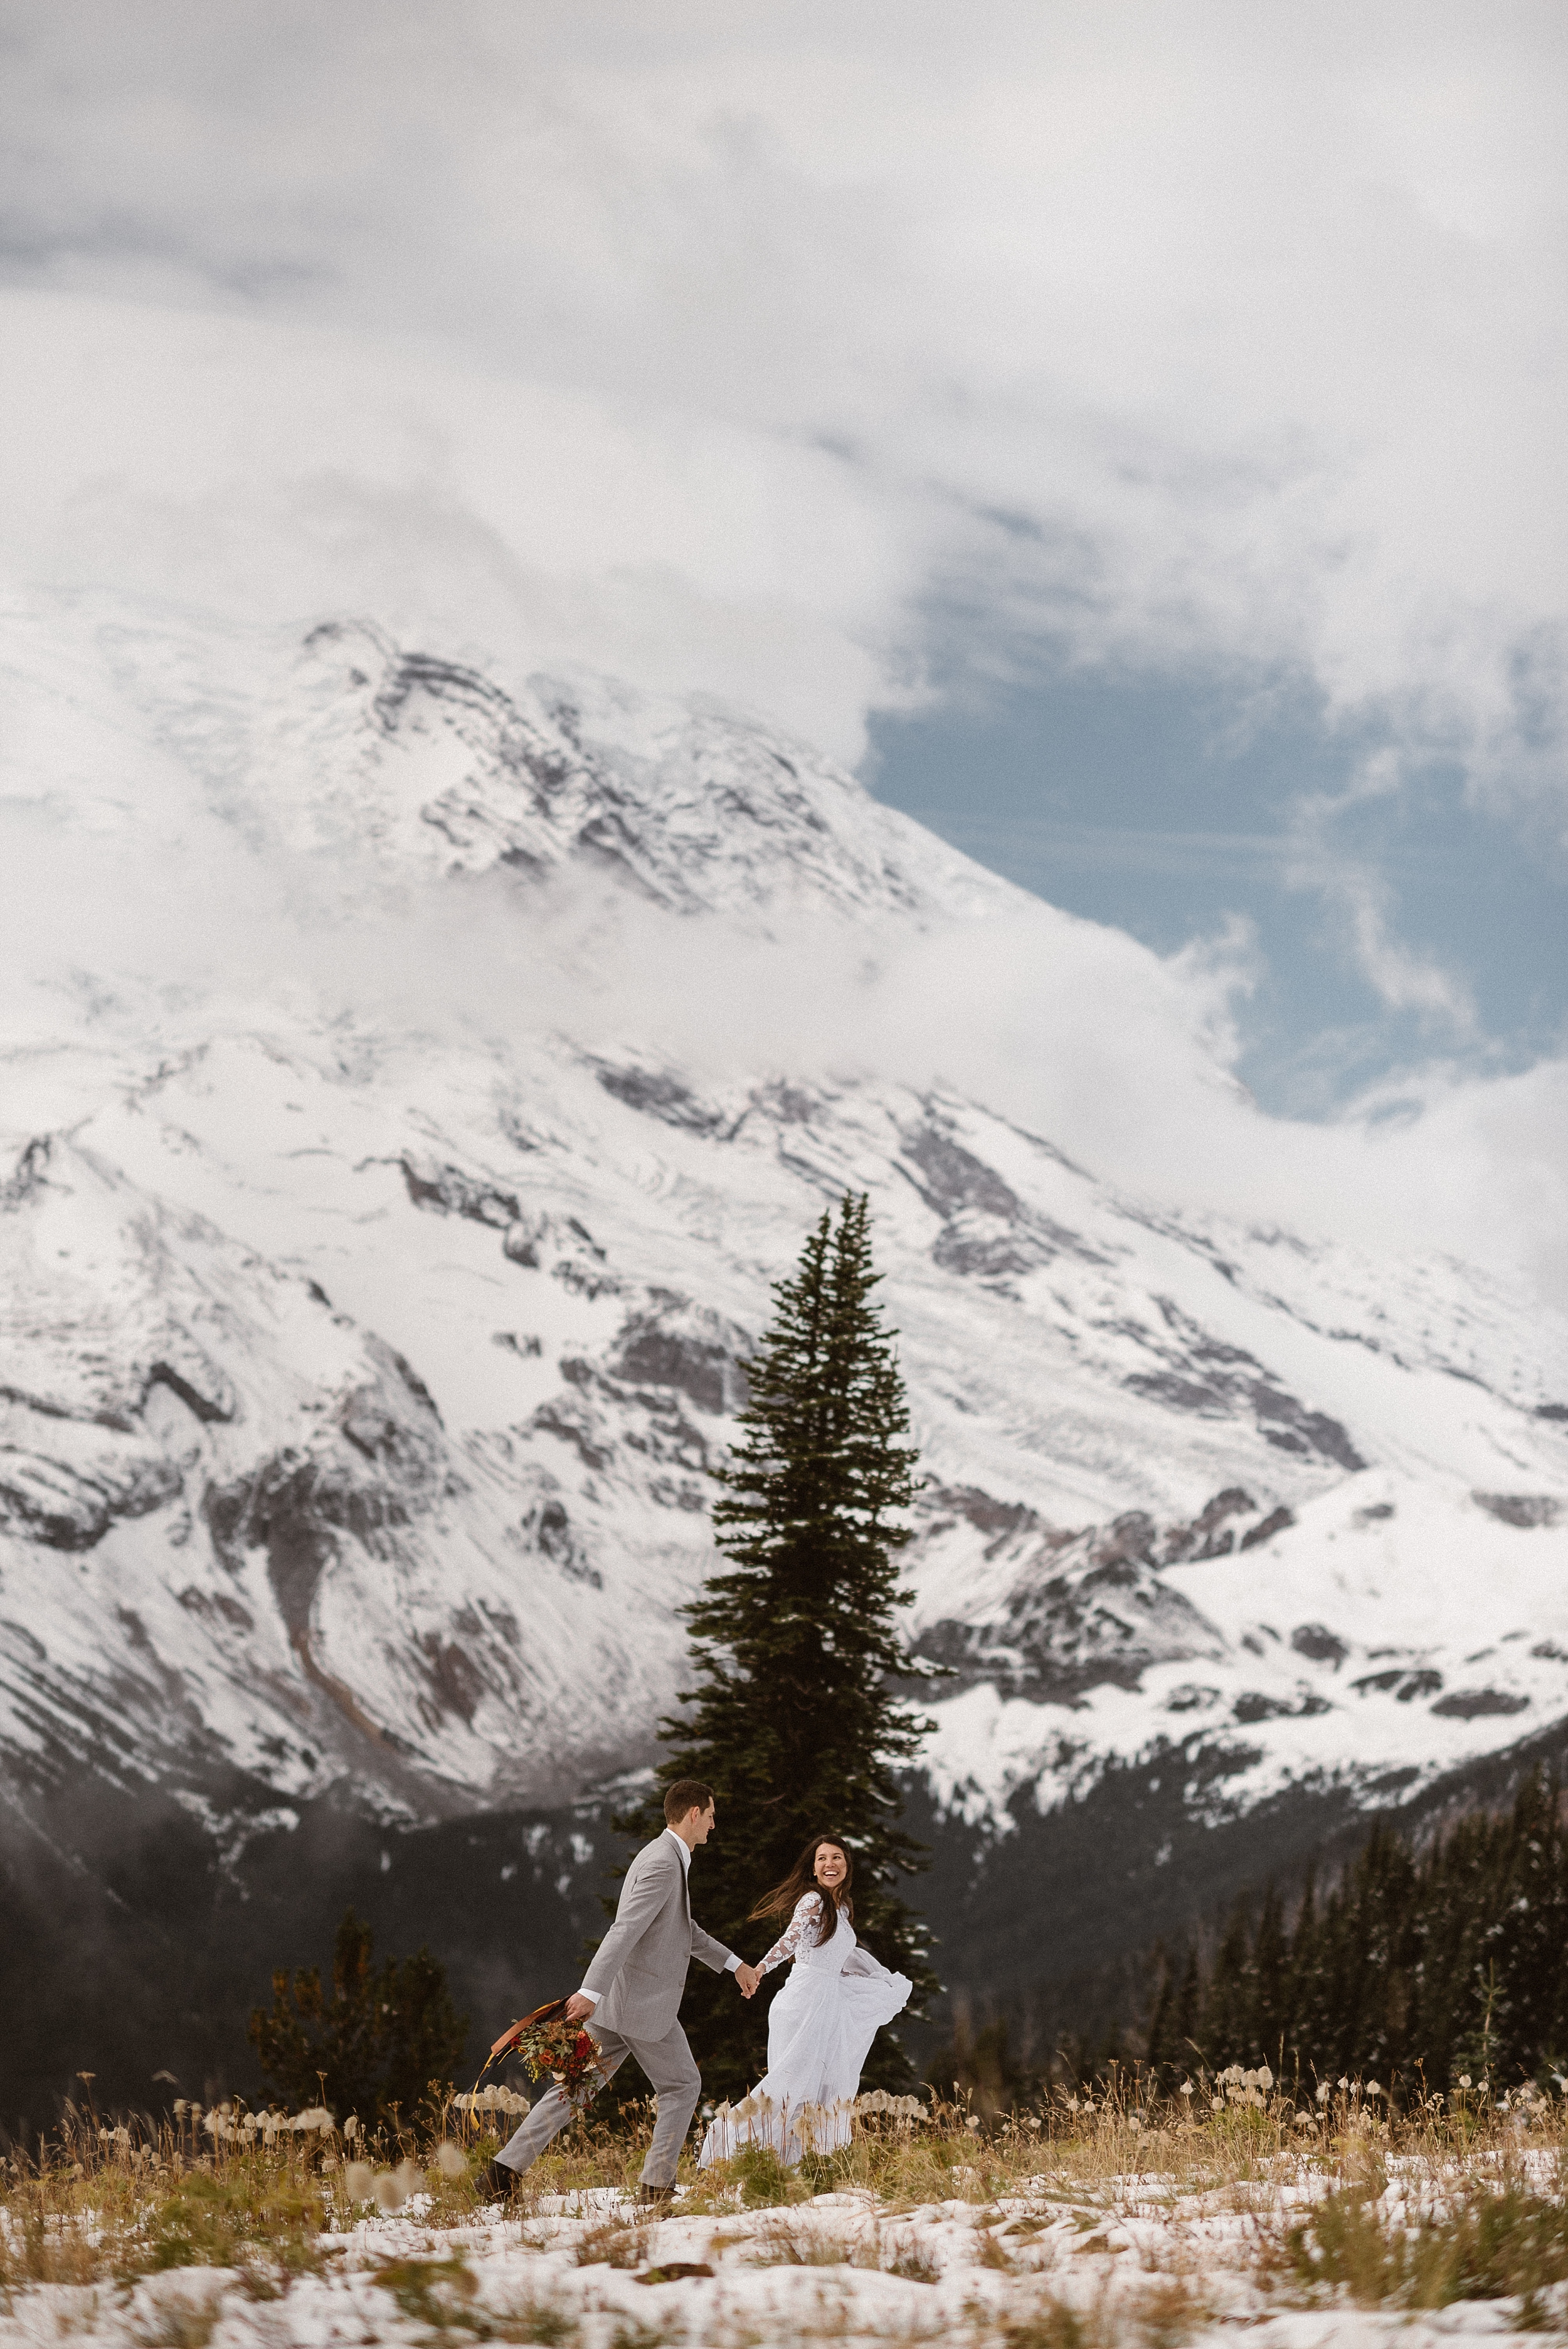 Mount Rainier stands in the background, vast amounts of ice and snow covering the granite mountain. A bride and groom, closer to the camera, hold hands and run through a snow-covered meadow that has tufts of grass and wildflowers peeking through. At the center of the image is a tall, dark-green fir tree.